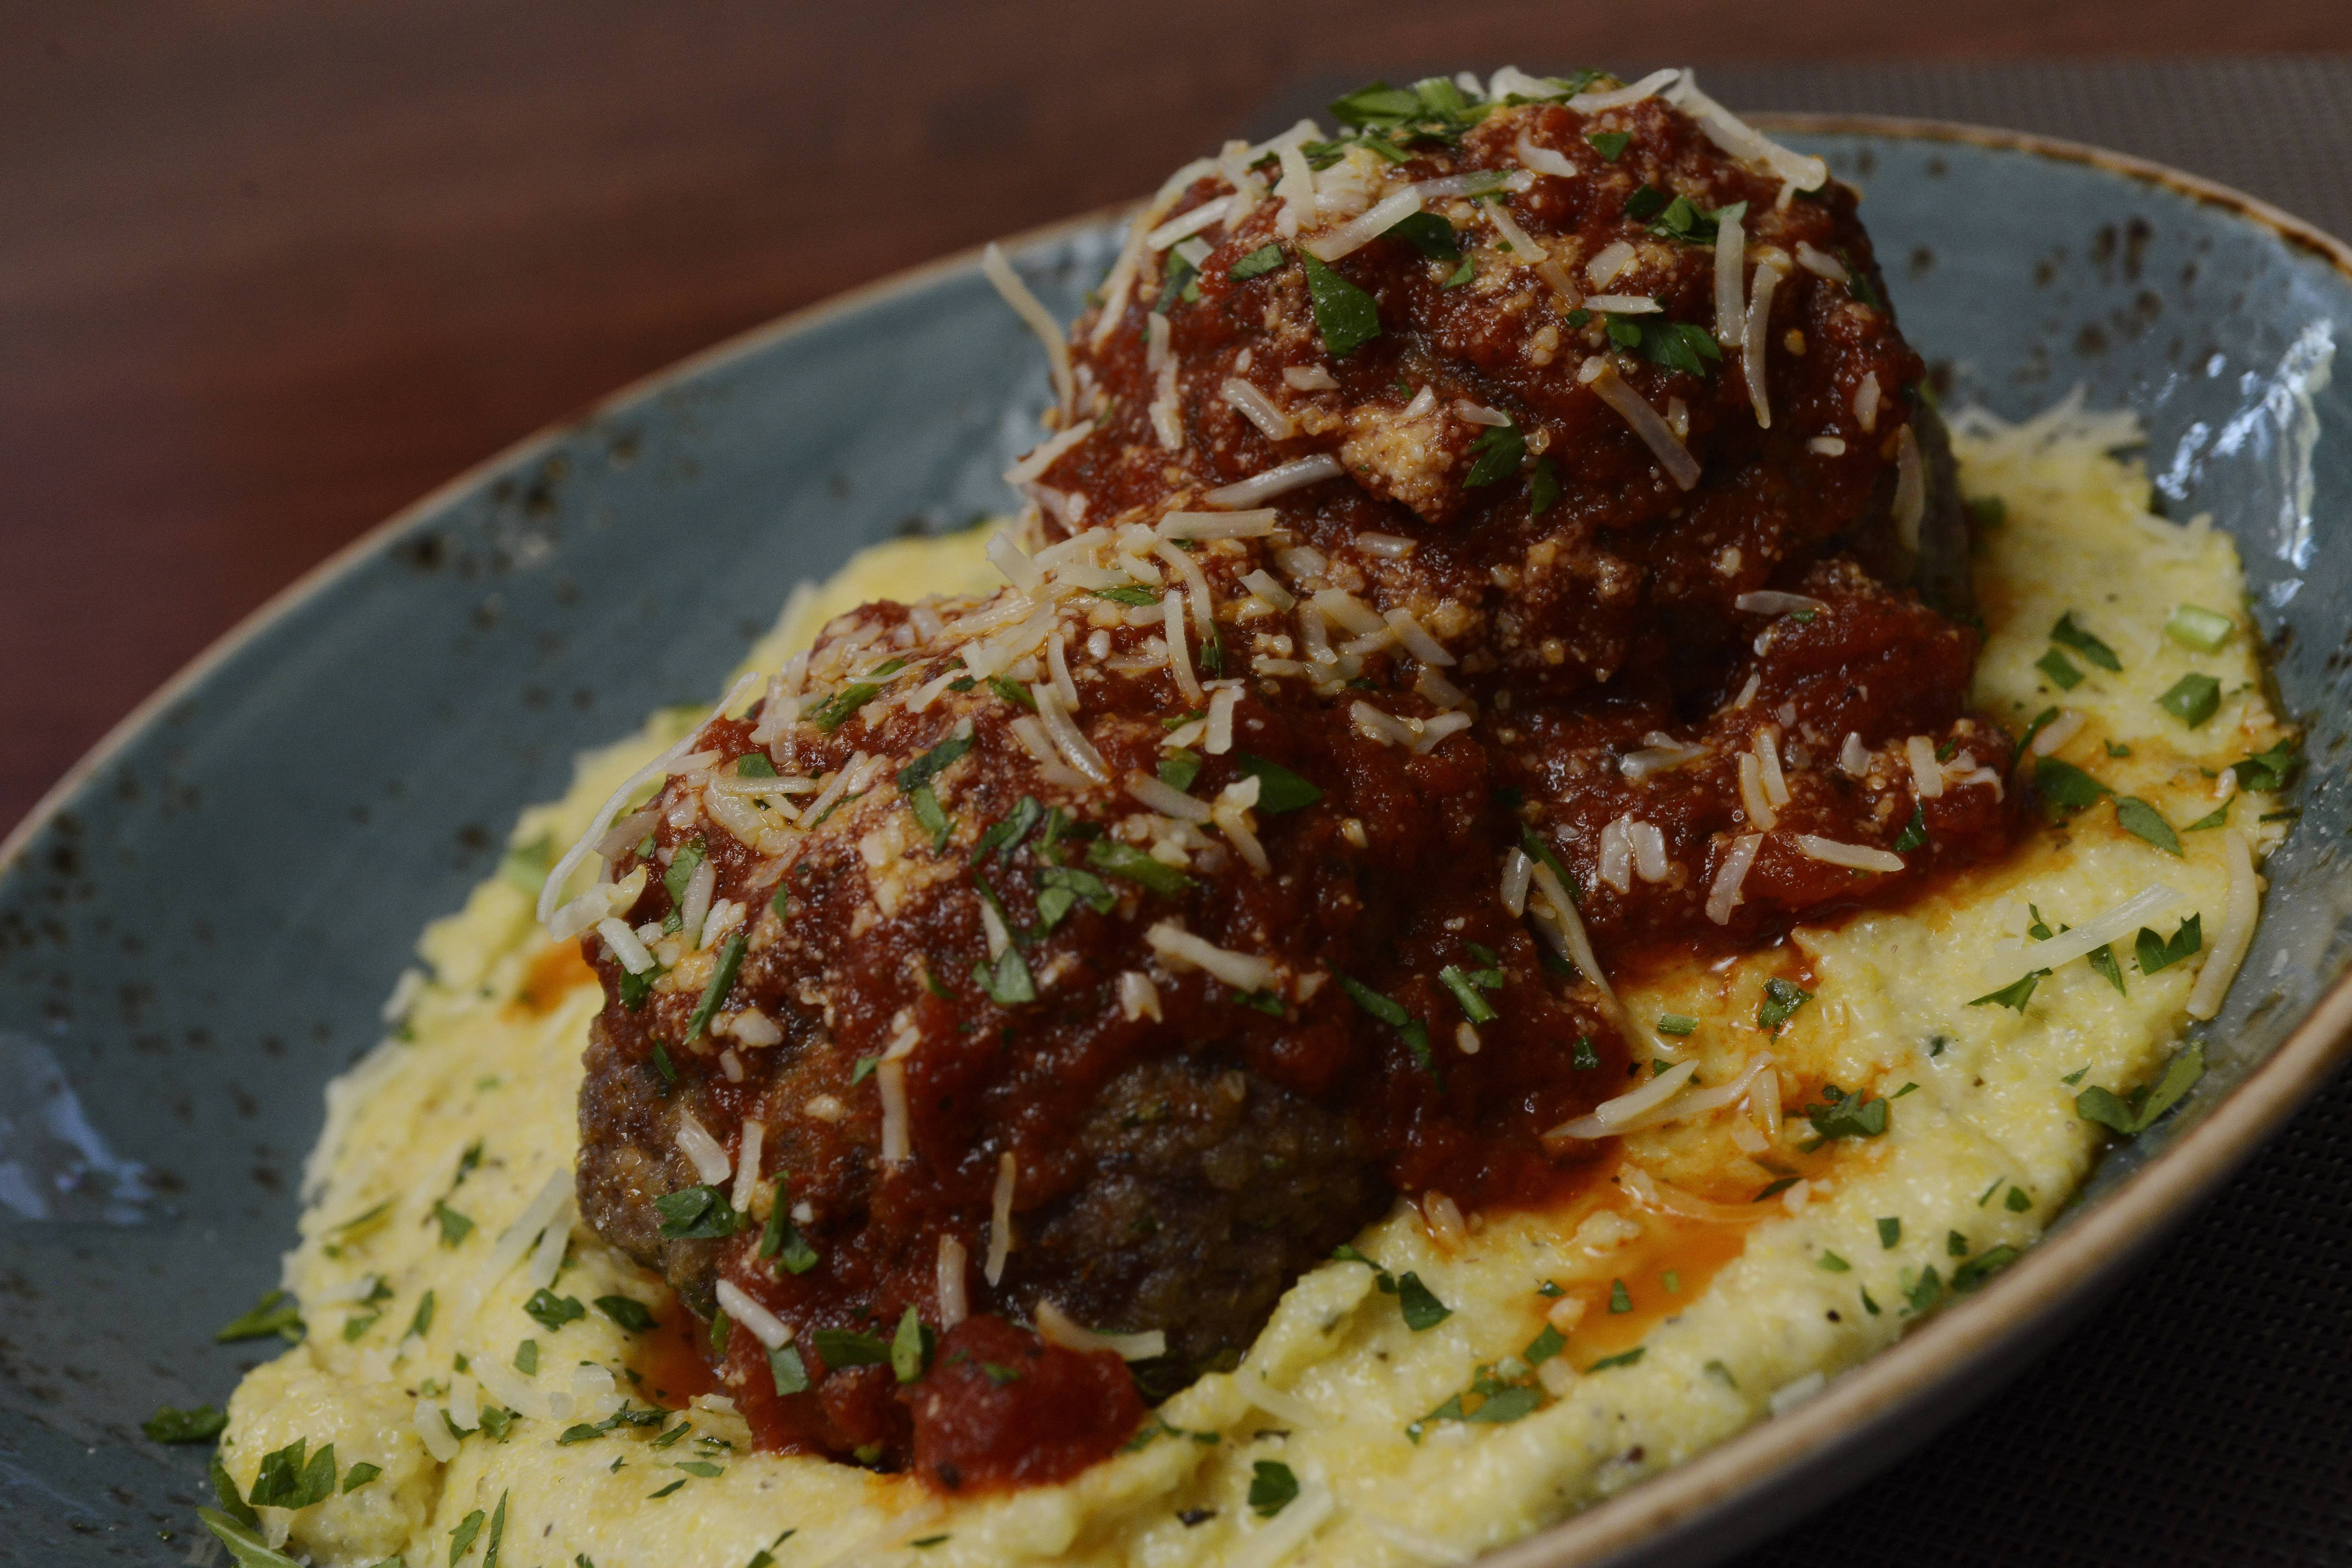 Meat-stuffed meatballs at Zeal in Schaumburg